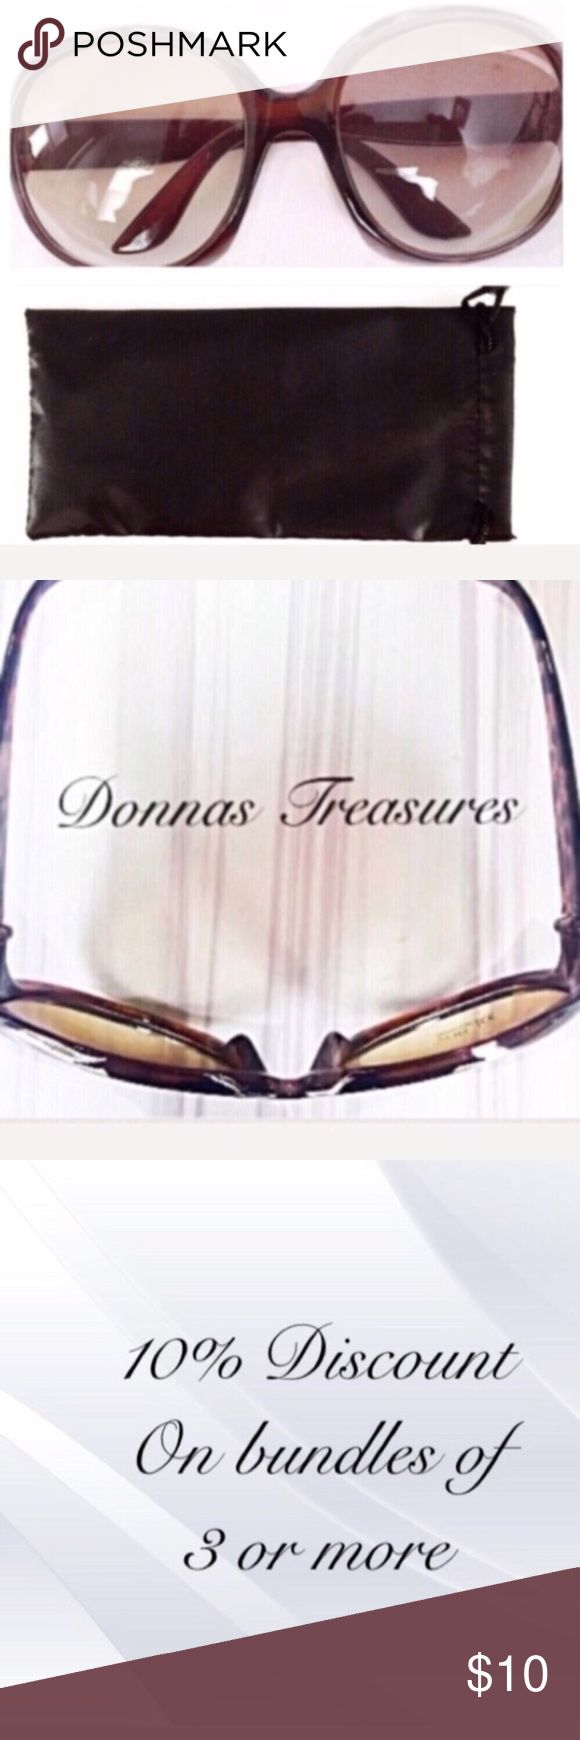 "❤️ Ladies Fashion Sunglasses These frames are made of high-quality plastic. The arms are 5"" long. The lenses are 3"" from top to bottom & 3"" from side to side. They have a UV protection level of 400. Accessories Sunglasses"